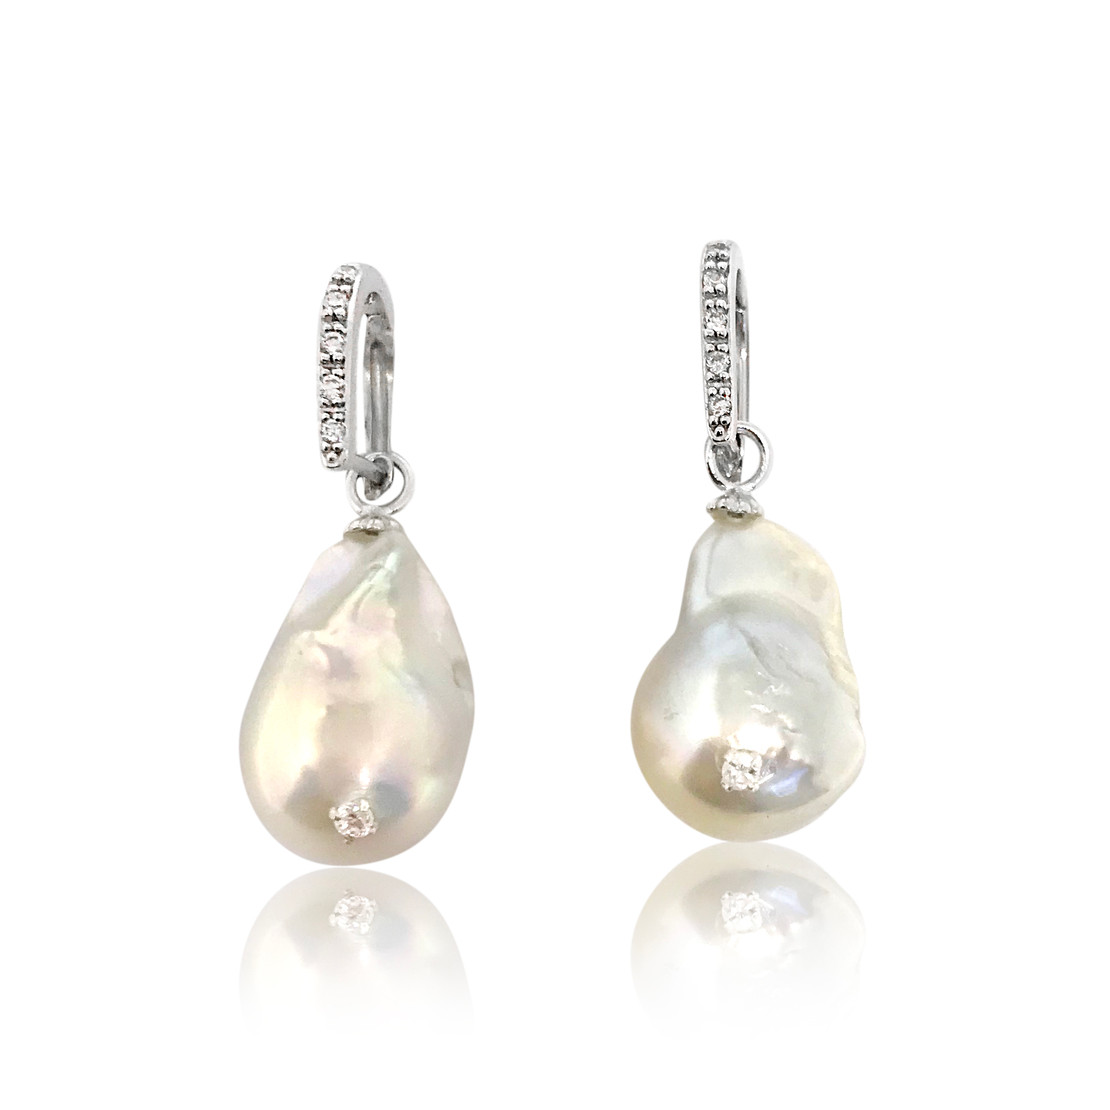 Lustrous Jewellery in Forbes - UK direct-to-consumer Everyday Luxury Pearl Jewelry